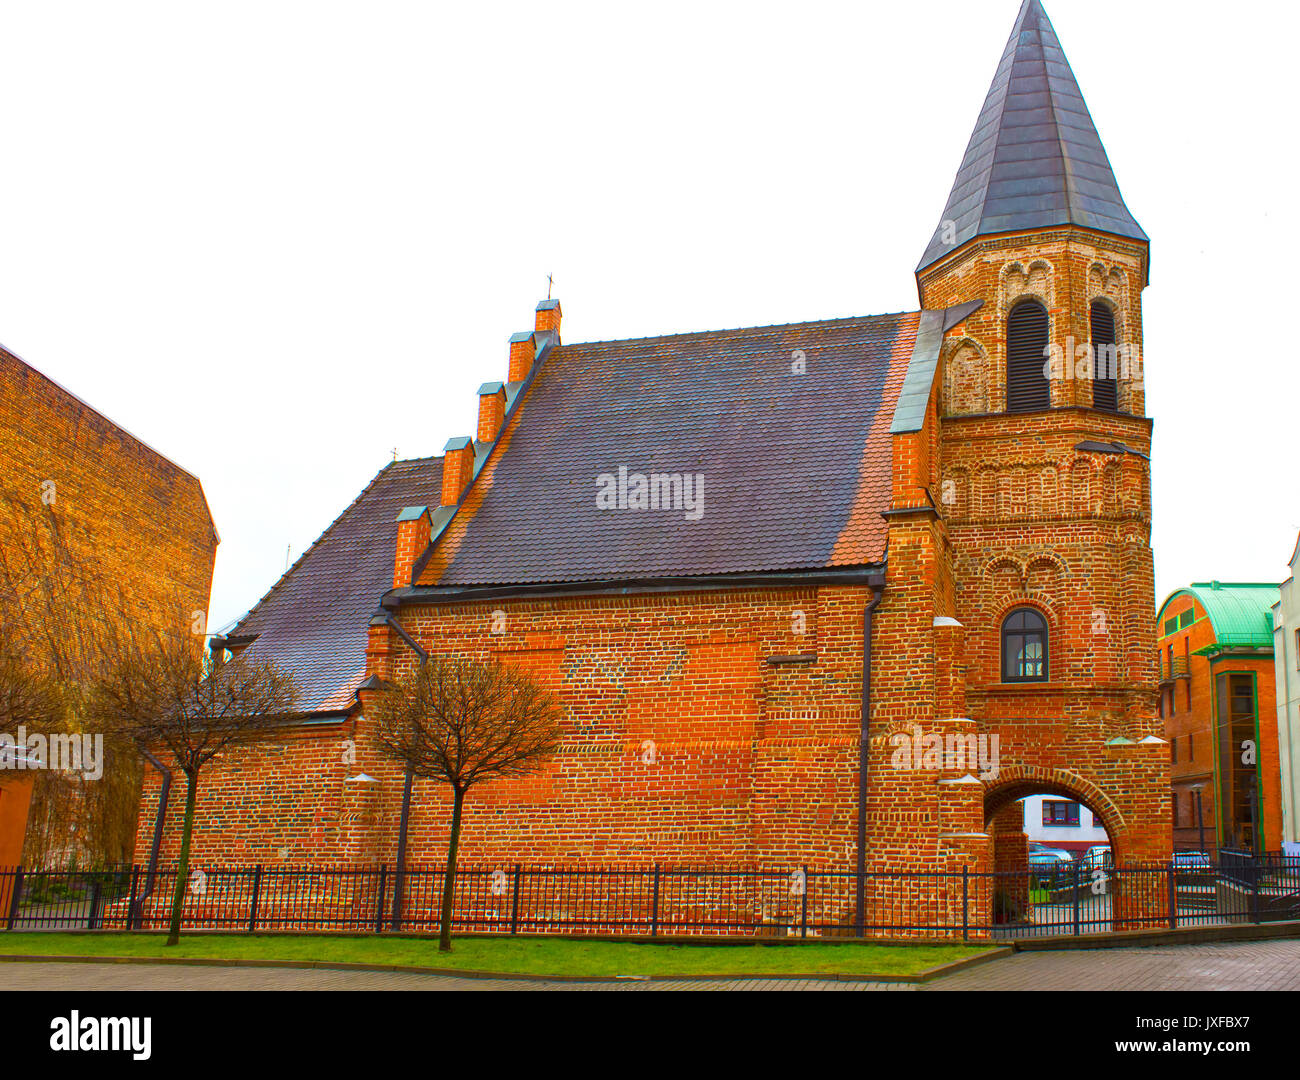 Catholic church of St. Gertrude at Kaunas, Lithuania - Stock Image